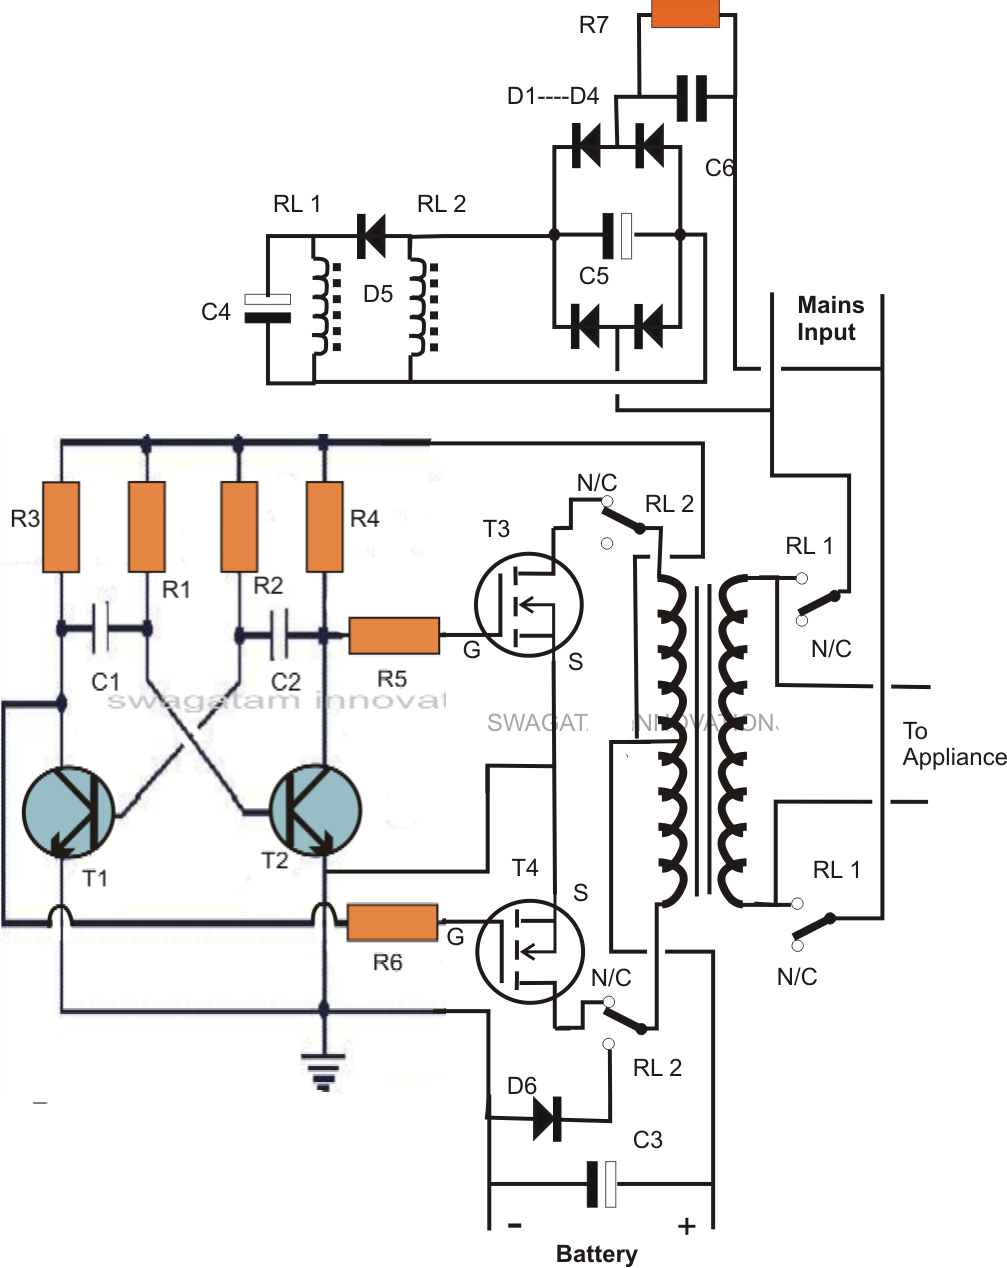 Honey Well Turbo Fan Starter Solinoide Wiring Diagram moreover How Does A Rear Windshield Motor Reverse Polarity besides 102348 moreover 12v Relay Wiring Diagram Switching 120v With together with Topic. on dpdt wiring diagram